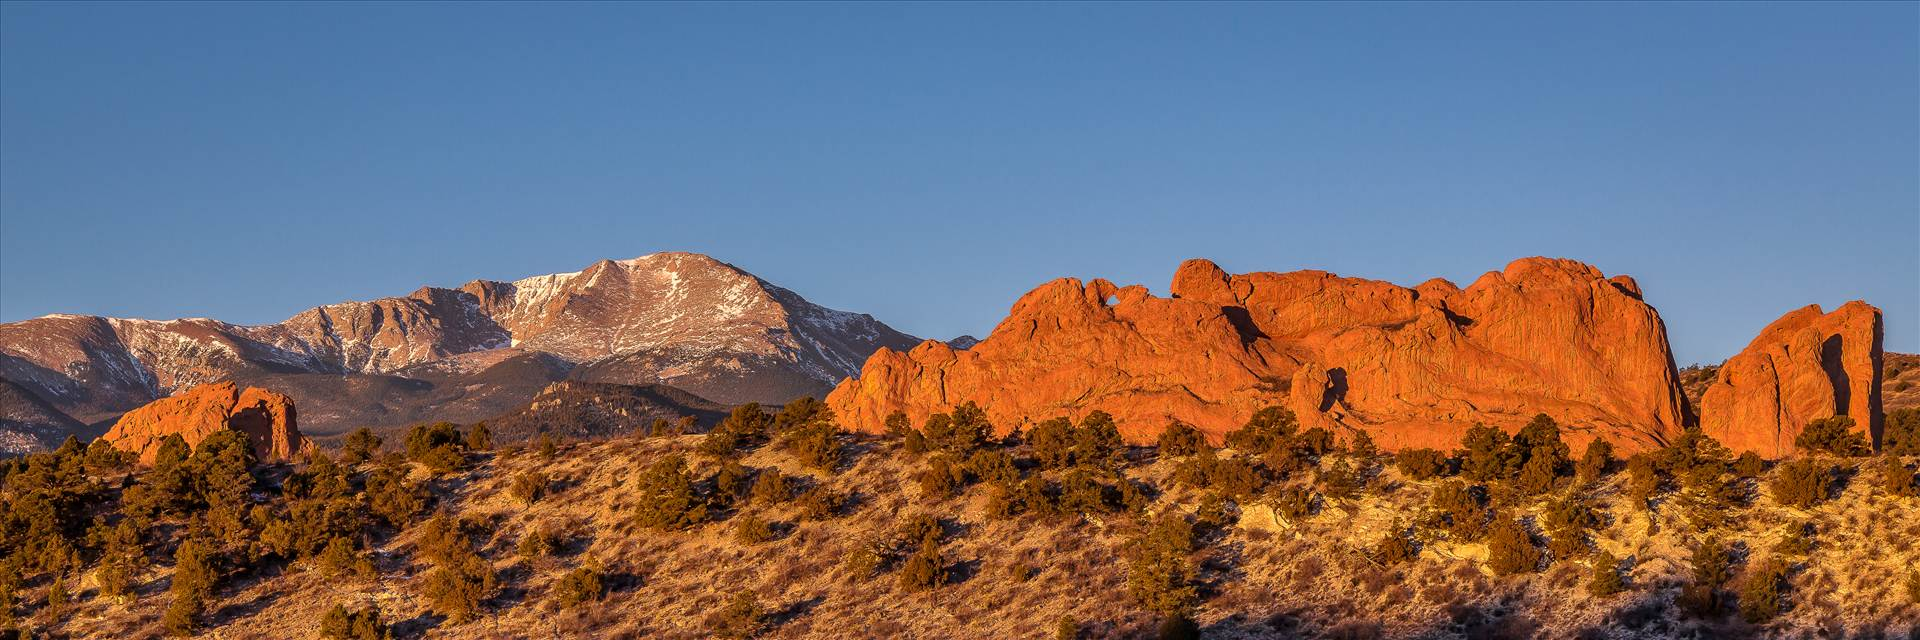 Garden of the Gods Sunrise - The Garden of  the Gods with Pike's Peak in the distance. by D Scott Smith